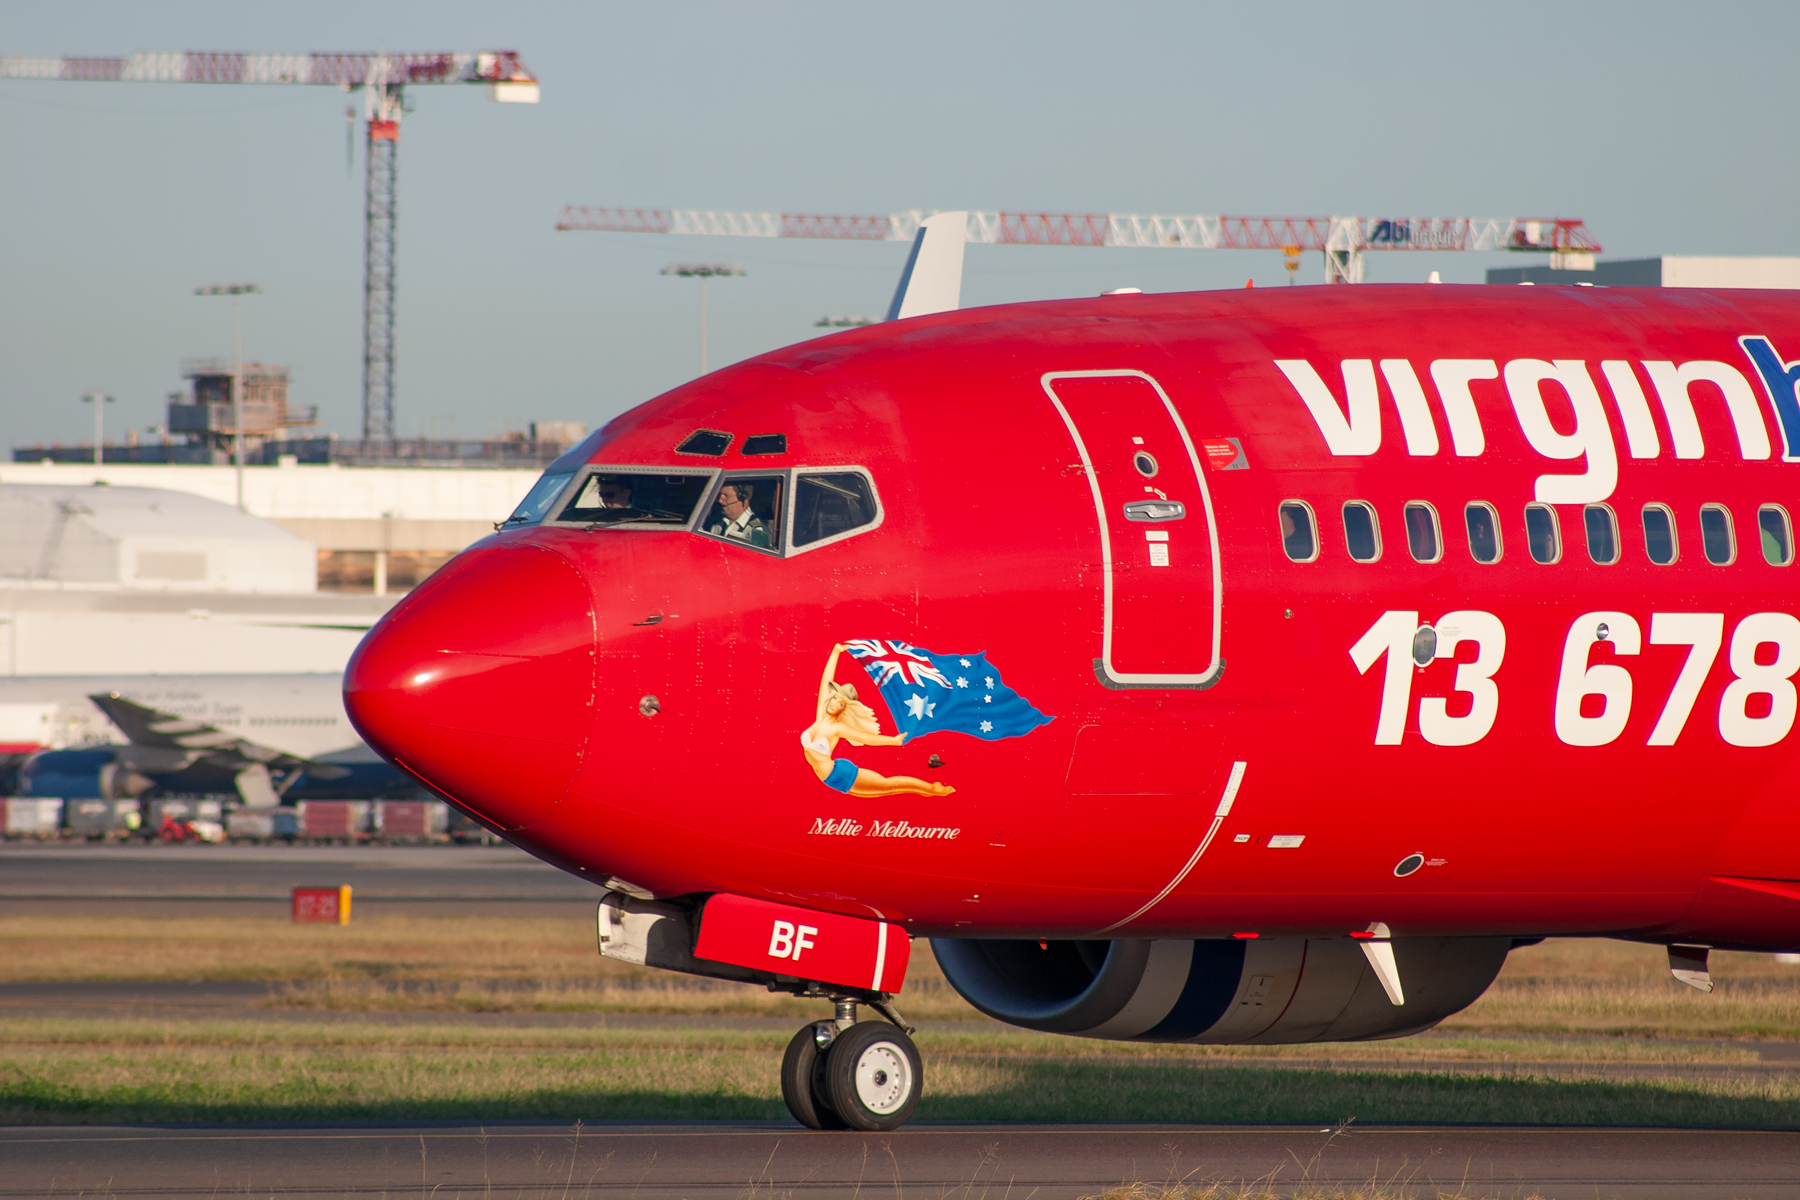 Virgin Blue Airlines Boeing 737-700 VH-VBF at Kingsford Smith